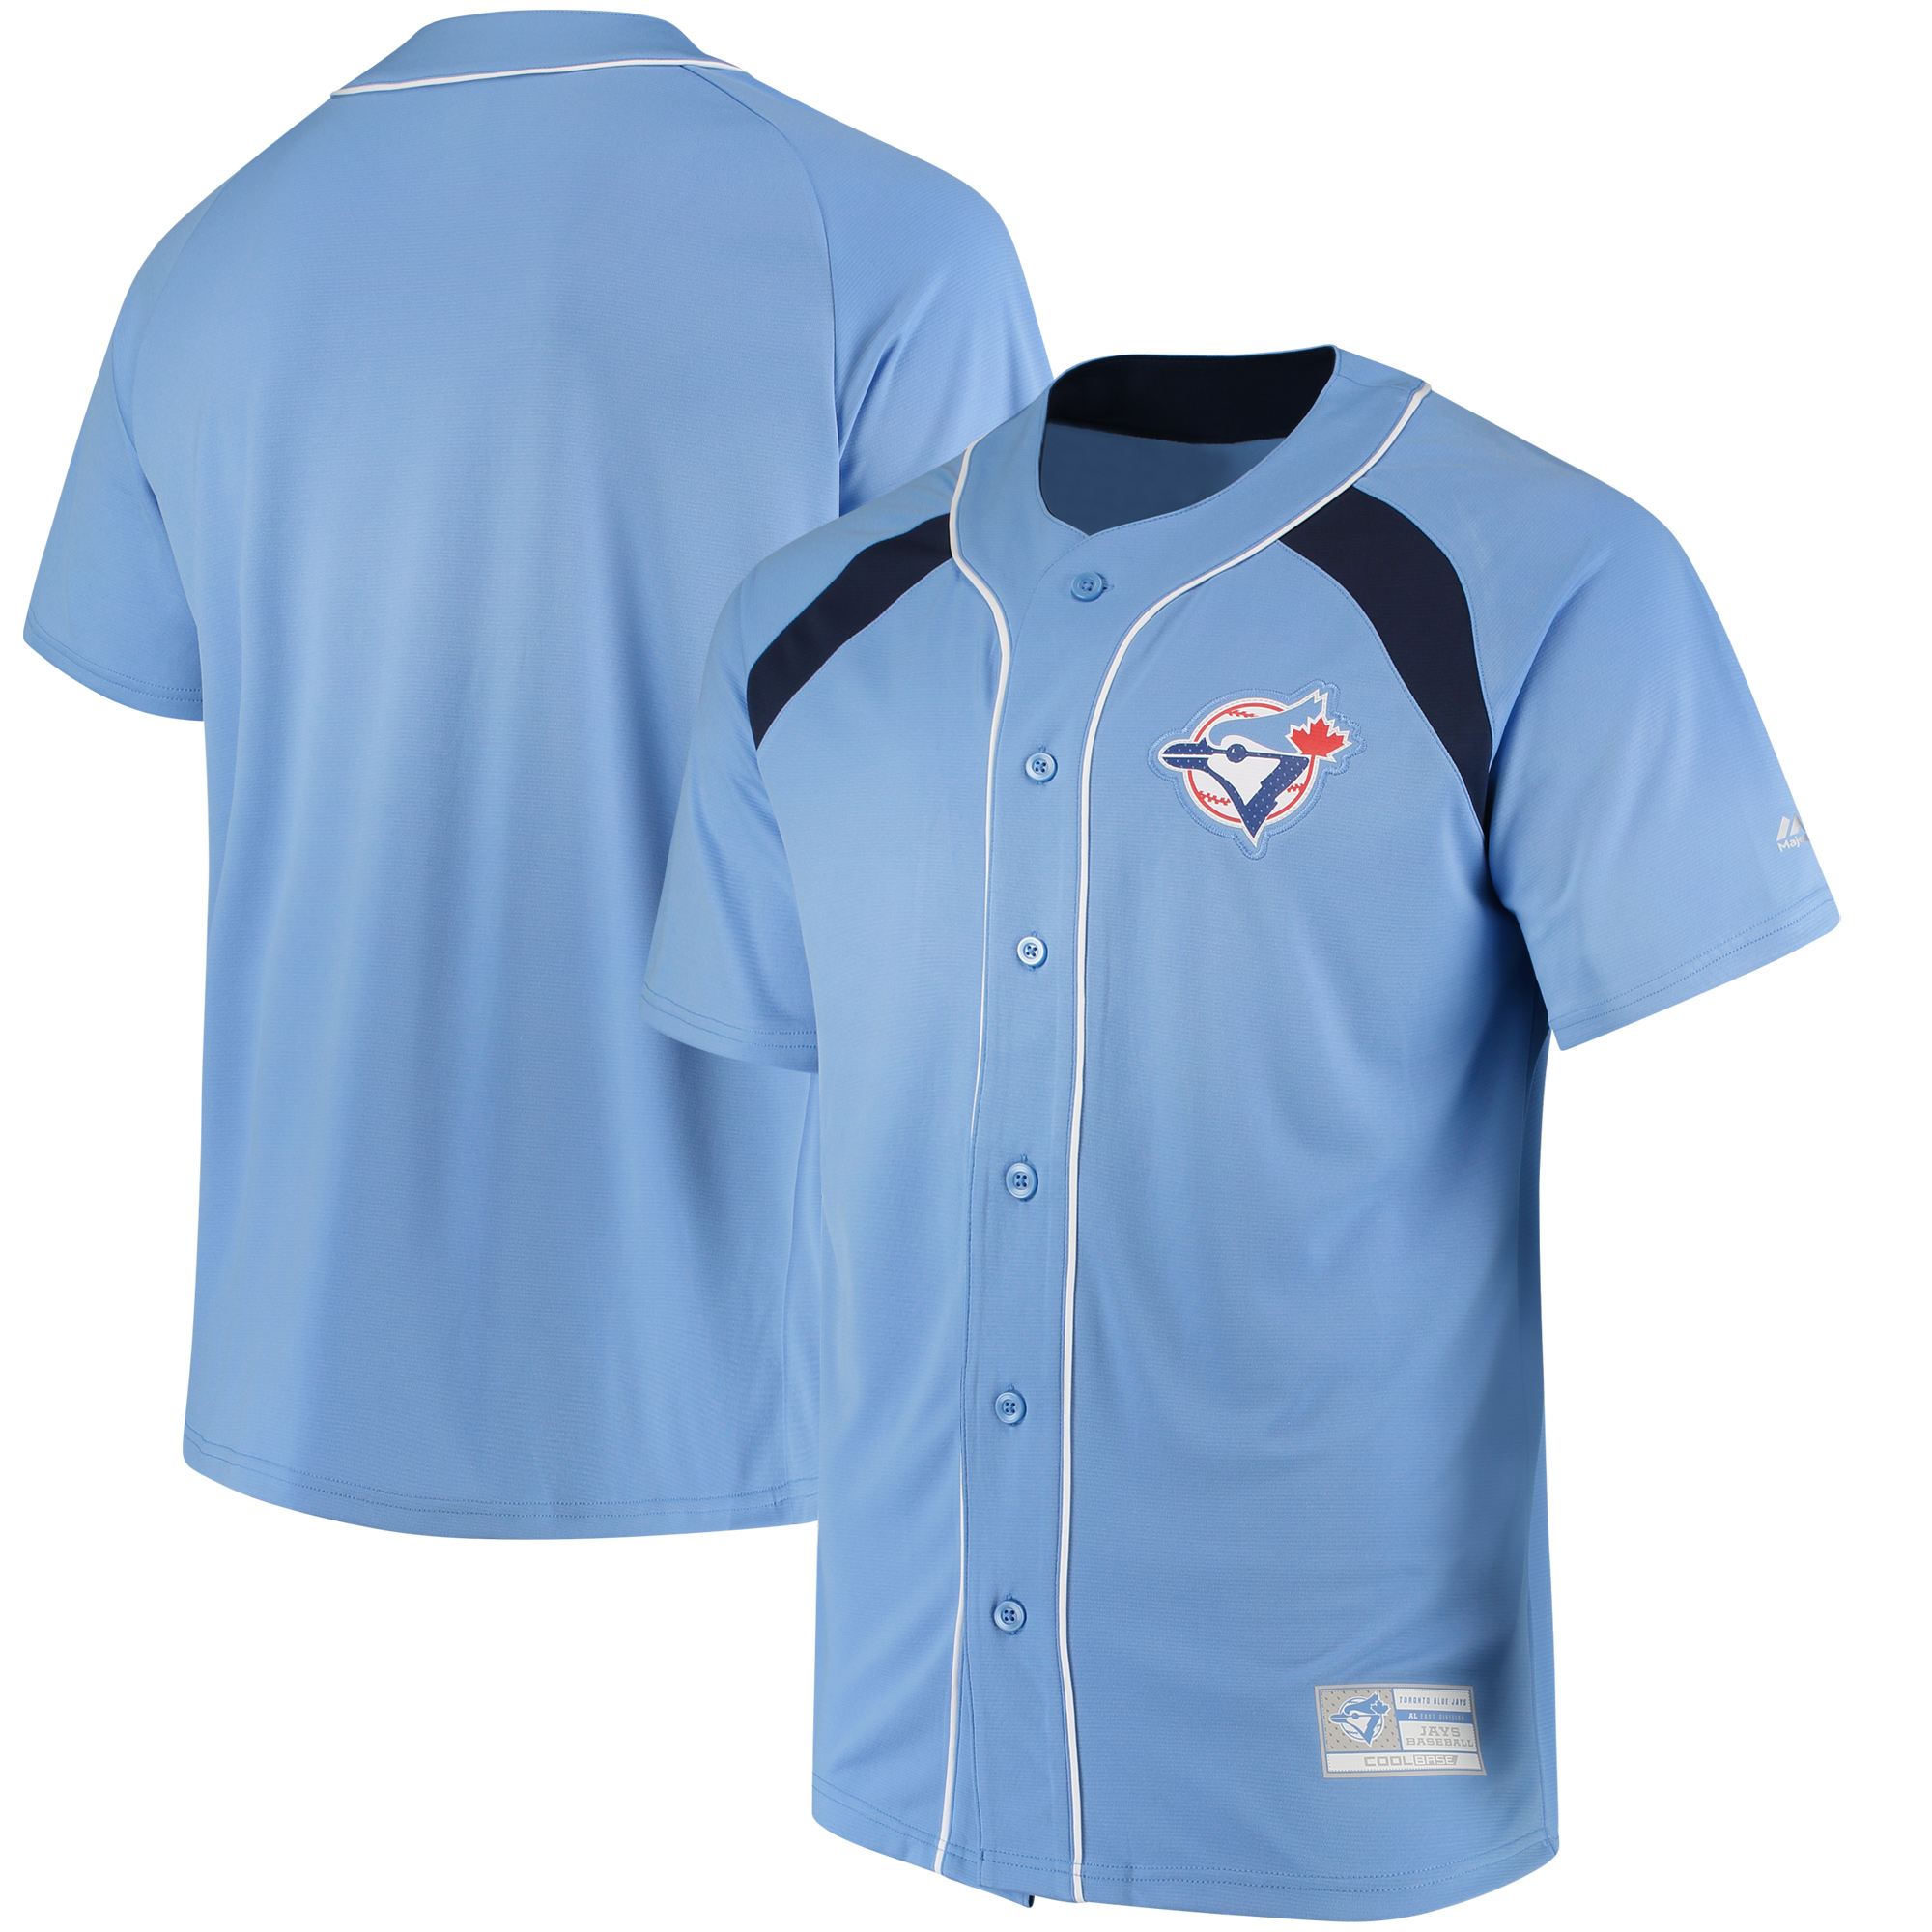 Toronto Blue Jays Majestic Cooperstown Collection Peak Power Fashion Jersey - Light Blue/Navy